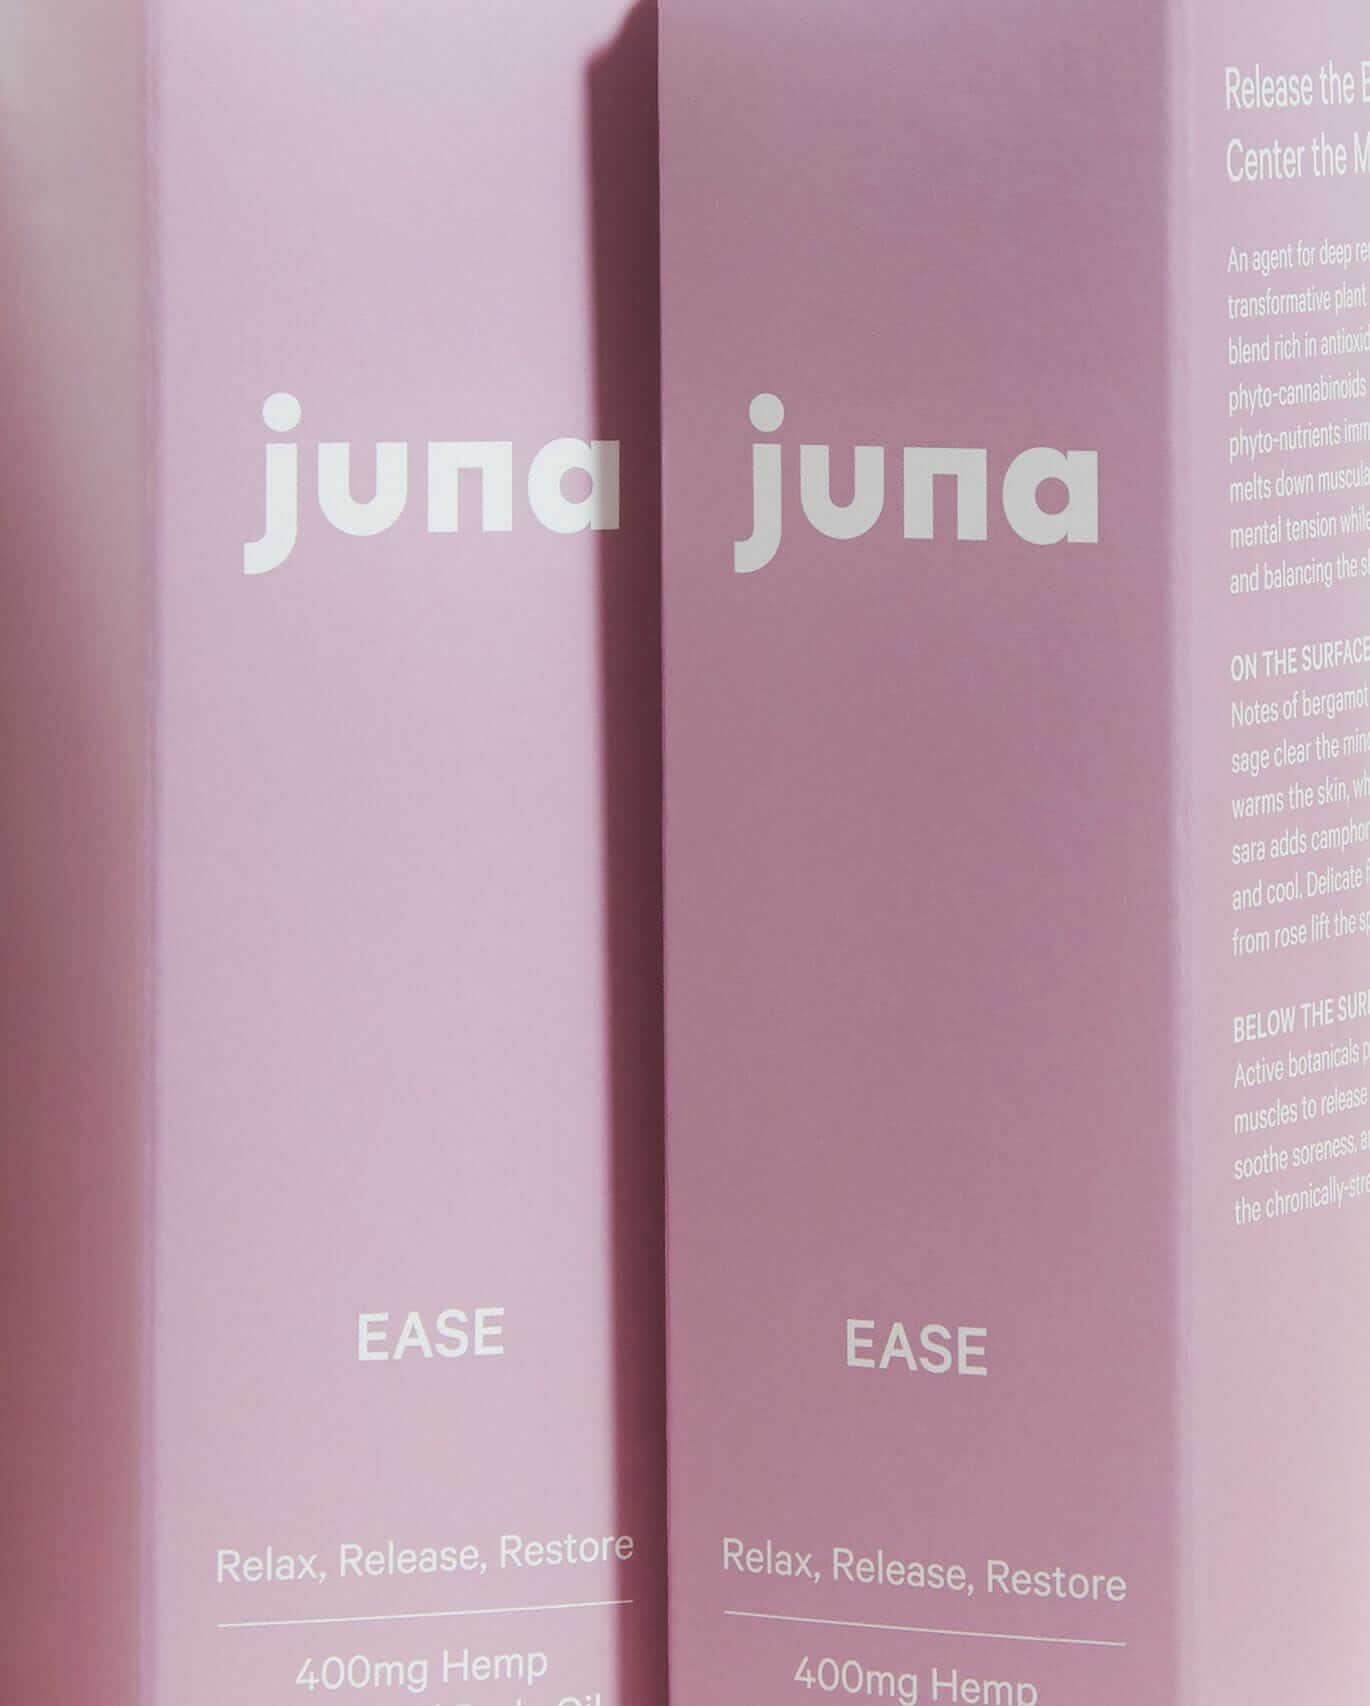 Juna_Packaging_LR_12-compressor